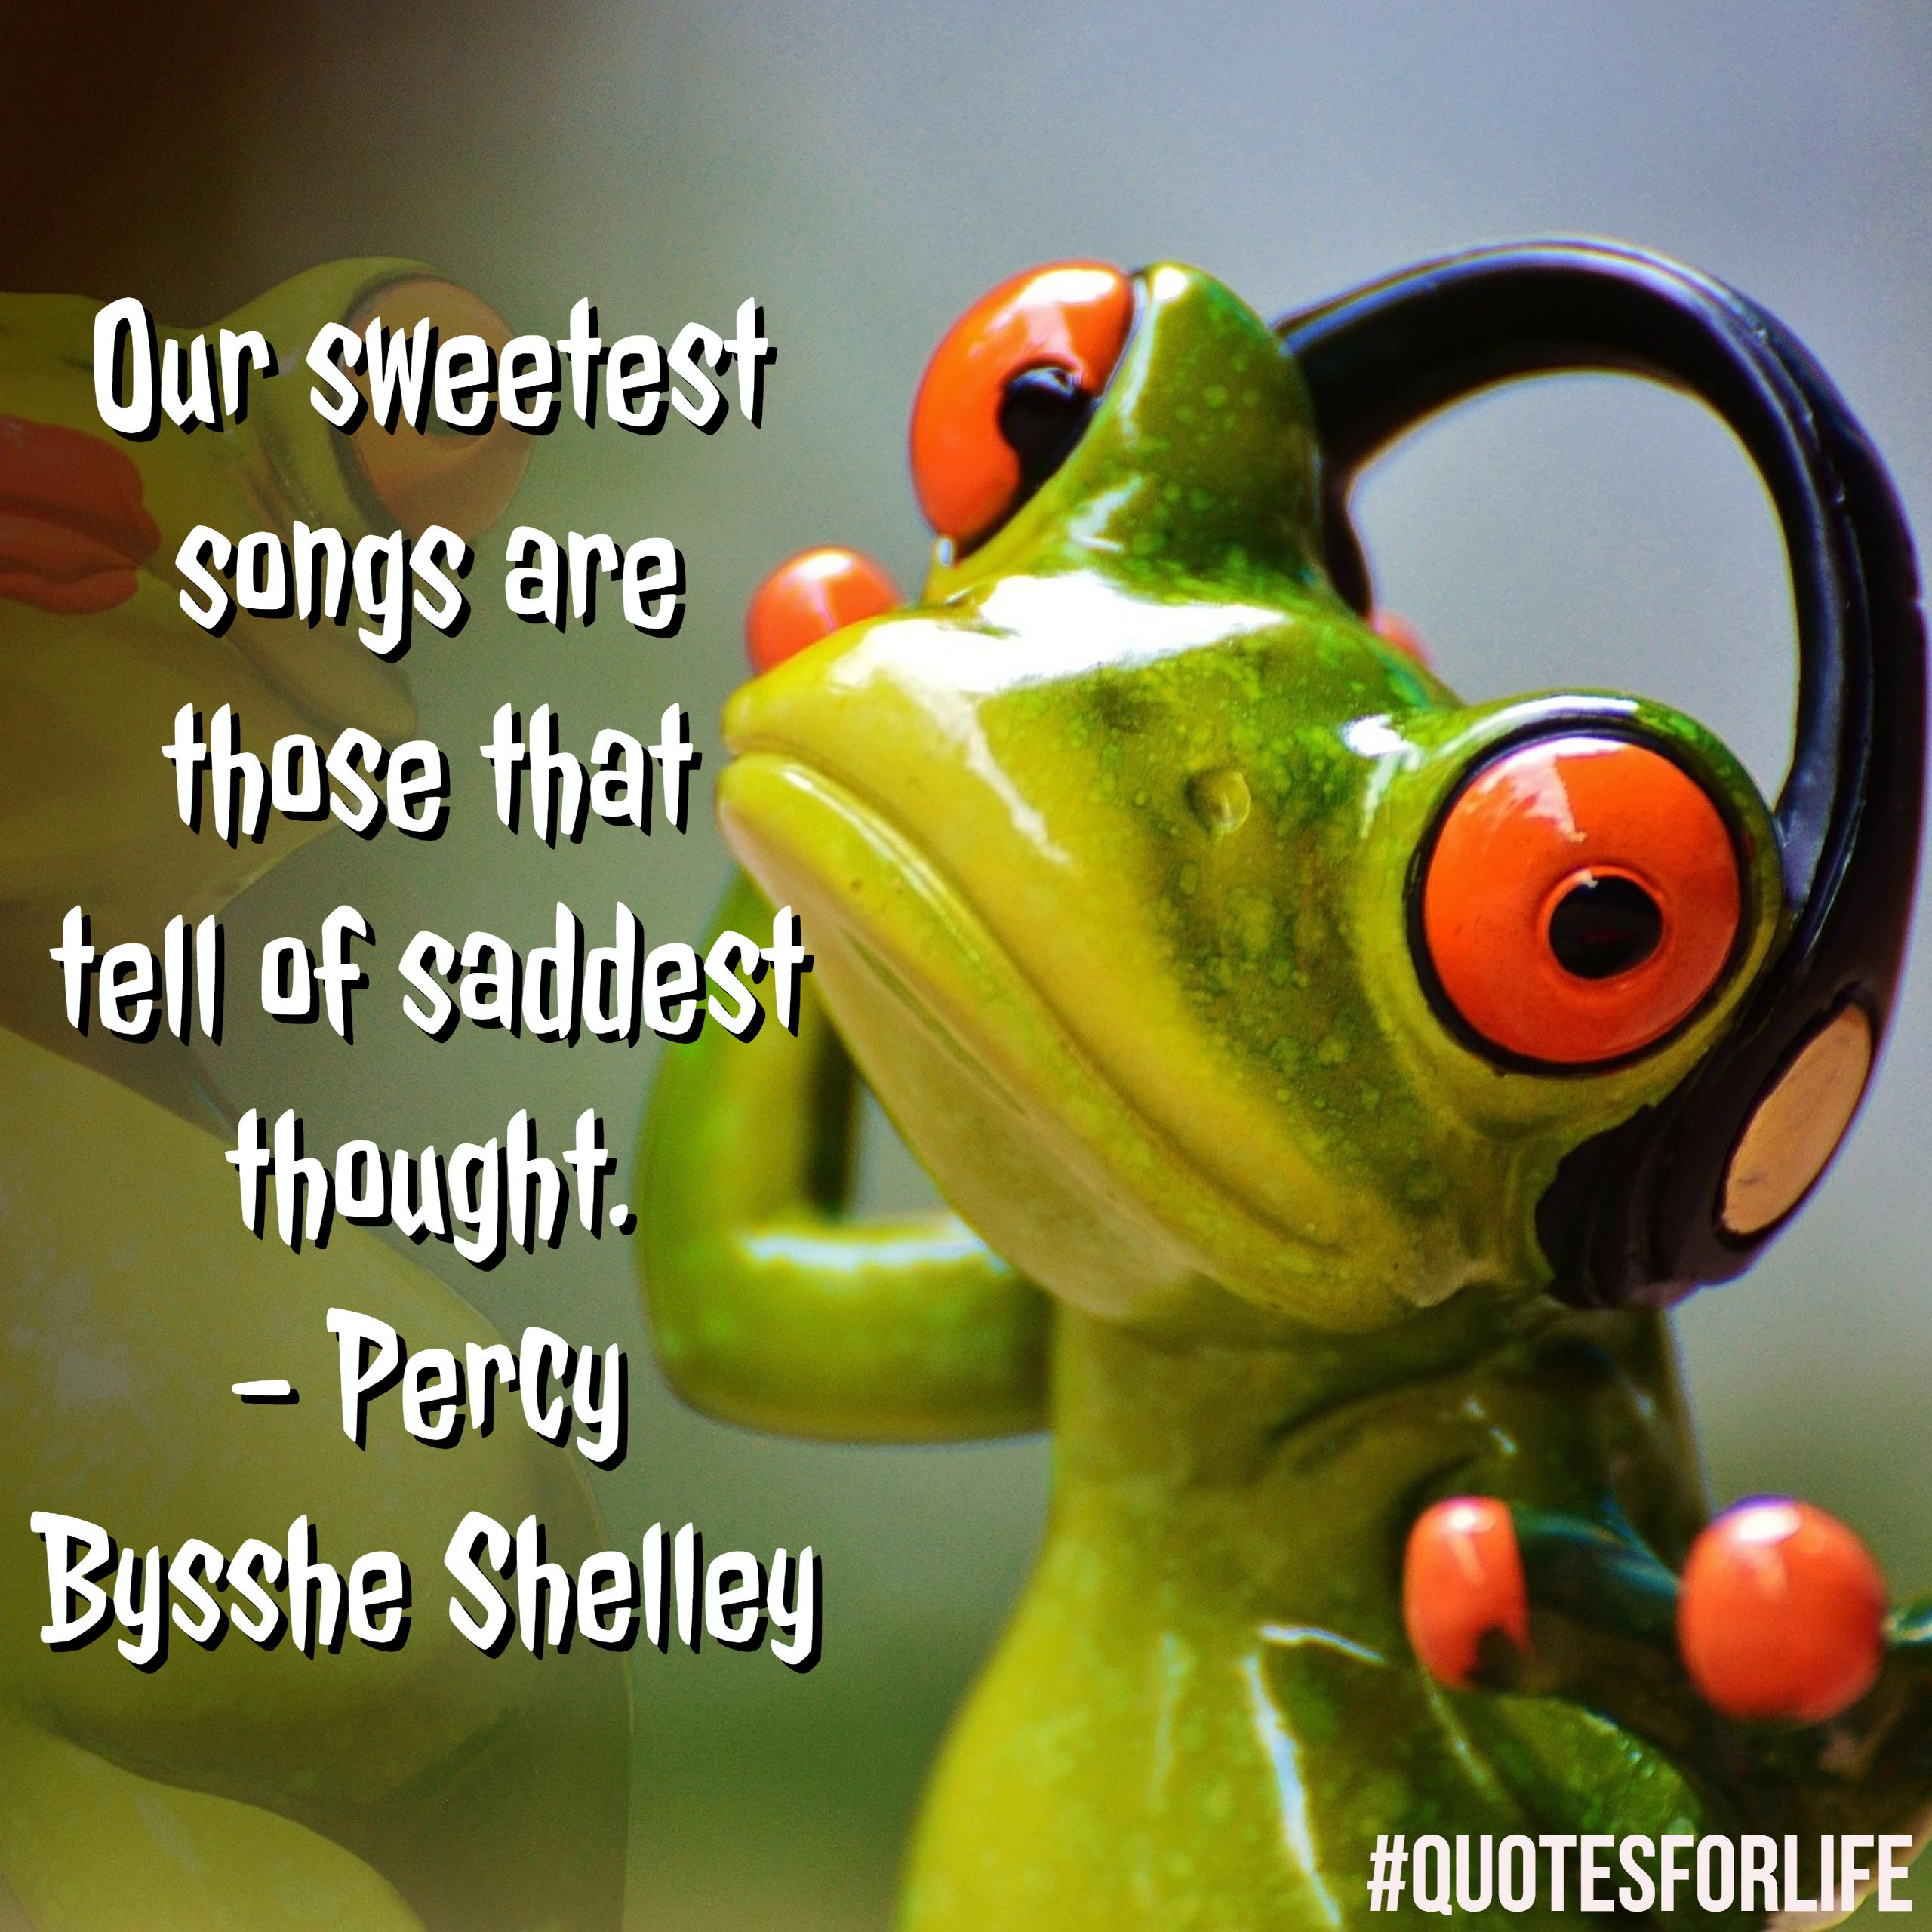 our sweetest songs are those which Our sweetest songs are those that tell of saddest thought - percy bysshe shelley quotes at azquotescom.